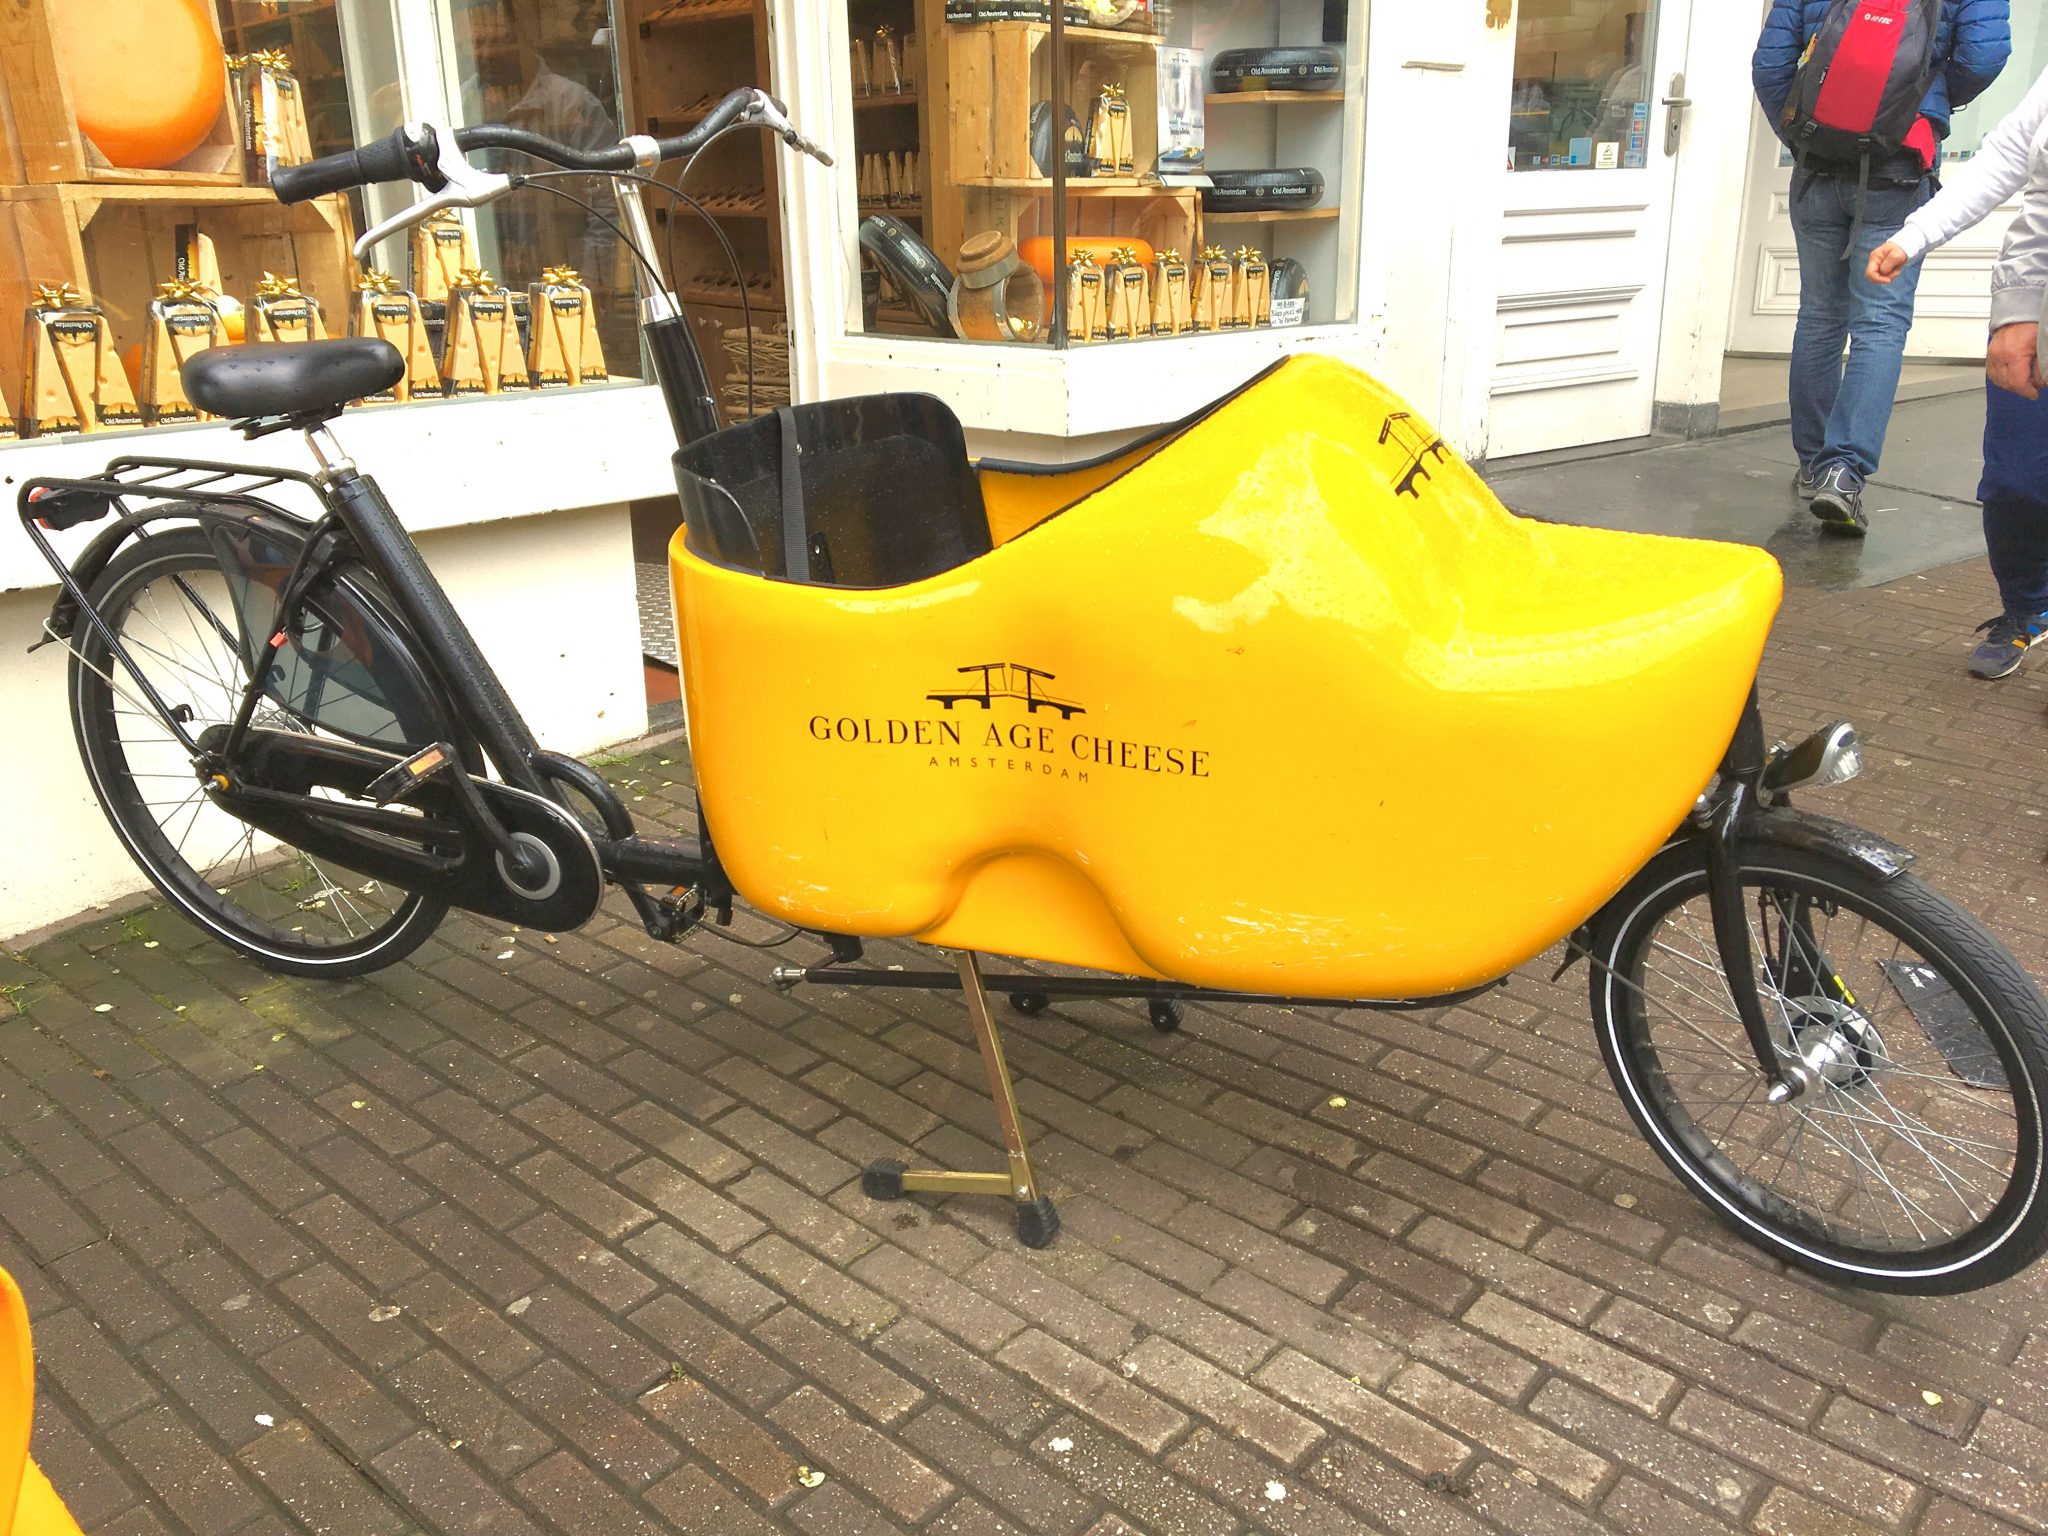 Clog Shoe Bike in Amsterdam